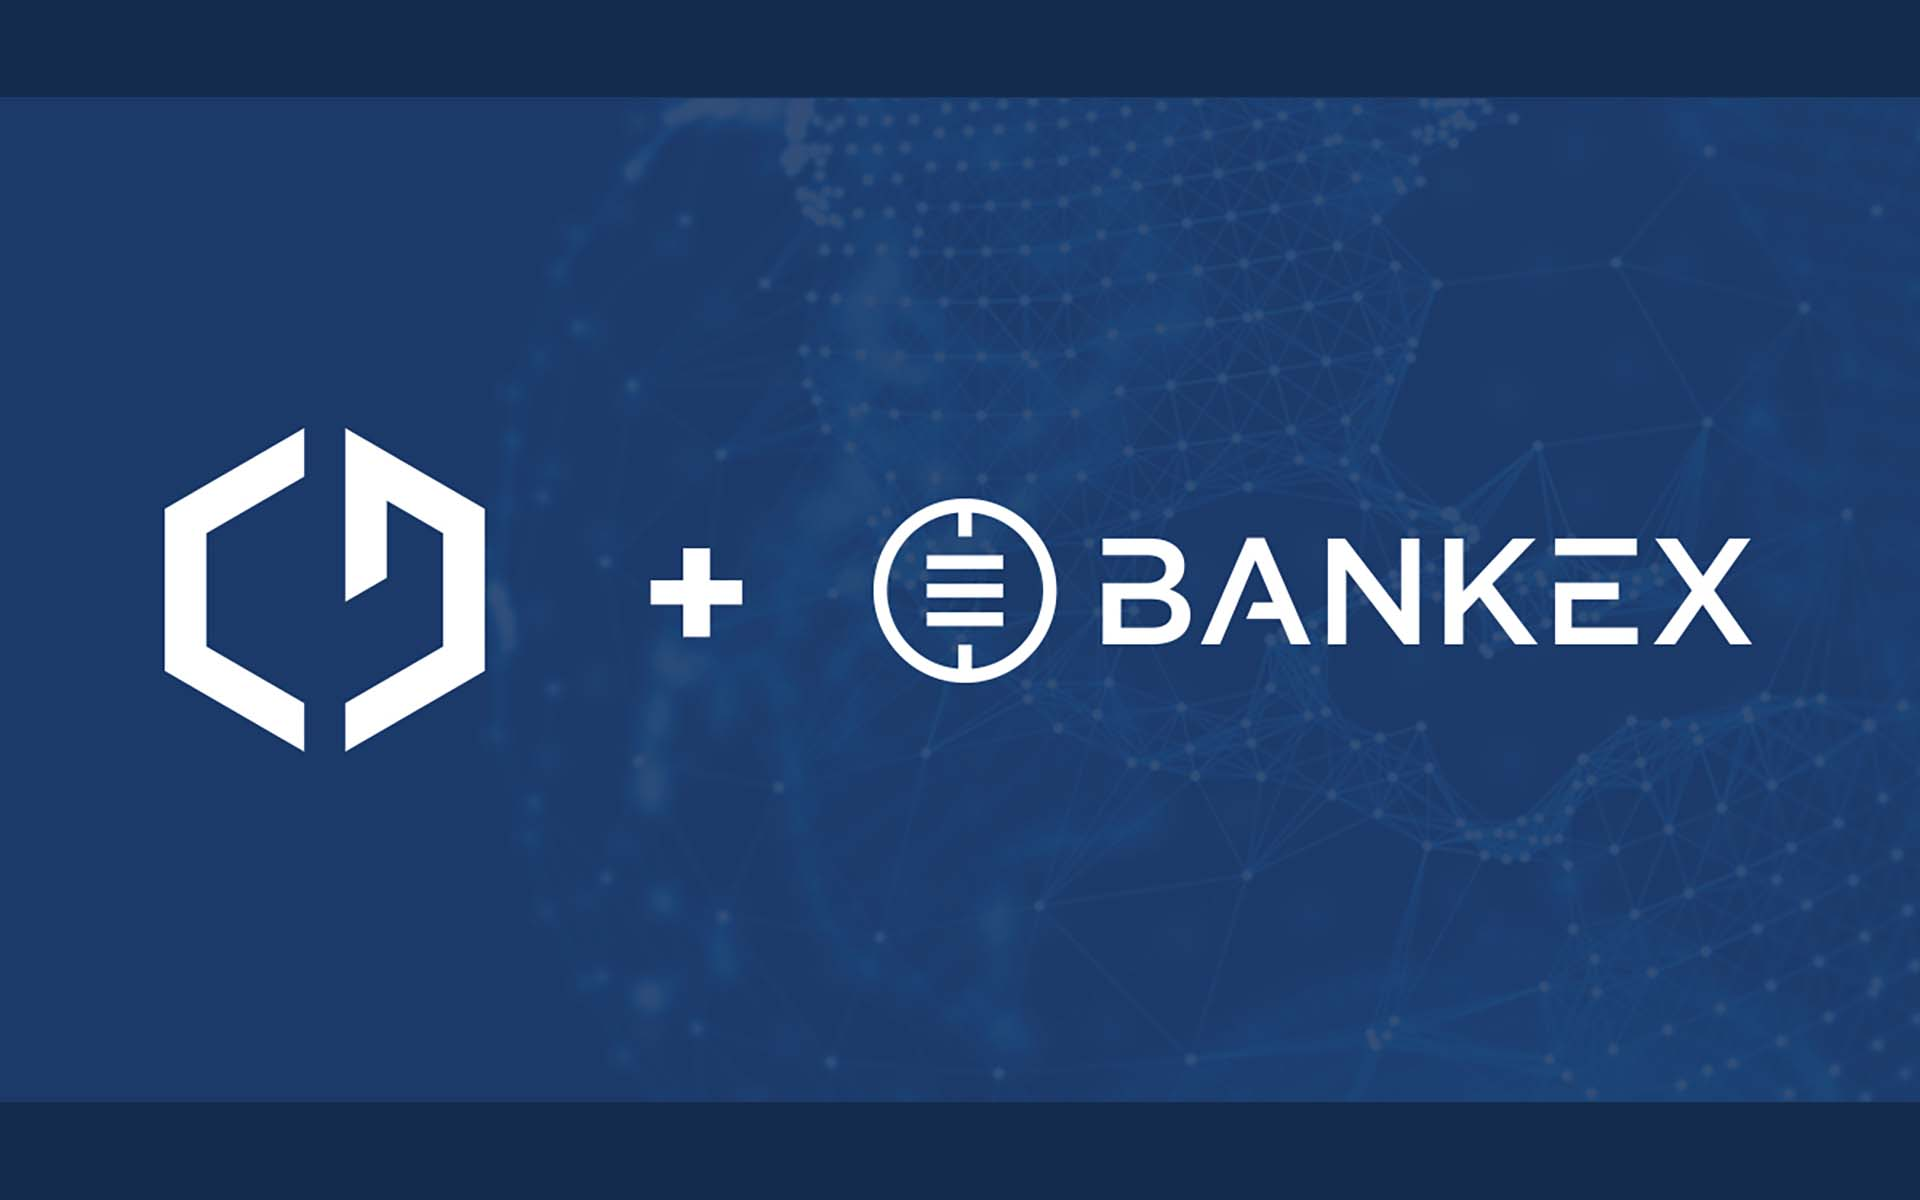 Confideal Announces Cooperation Agreement with BANKEX